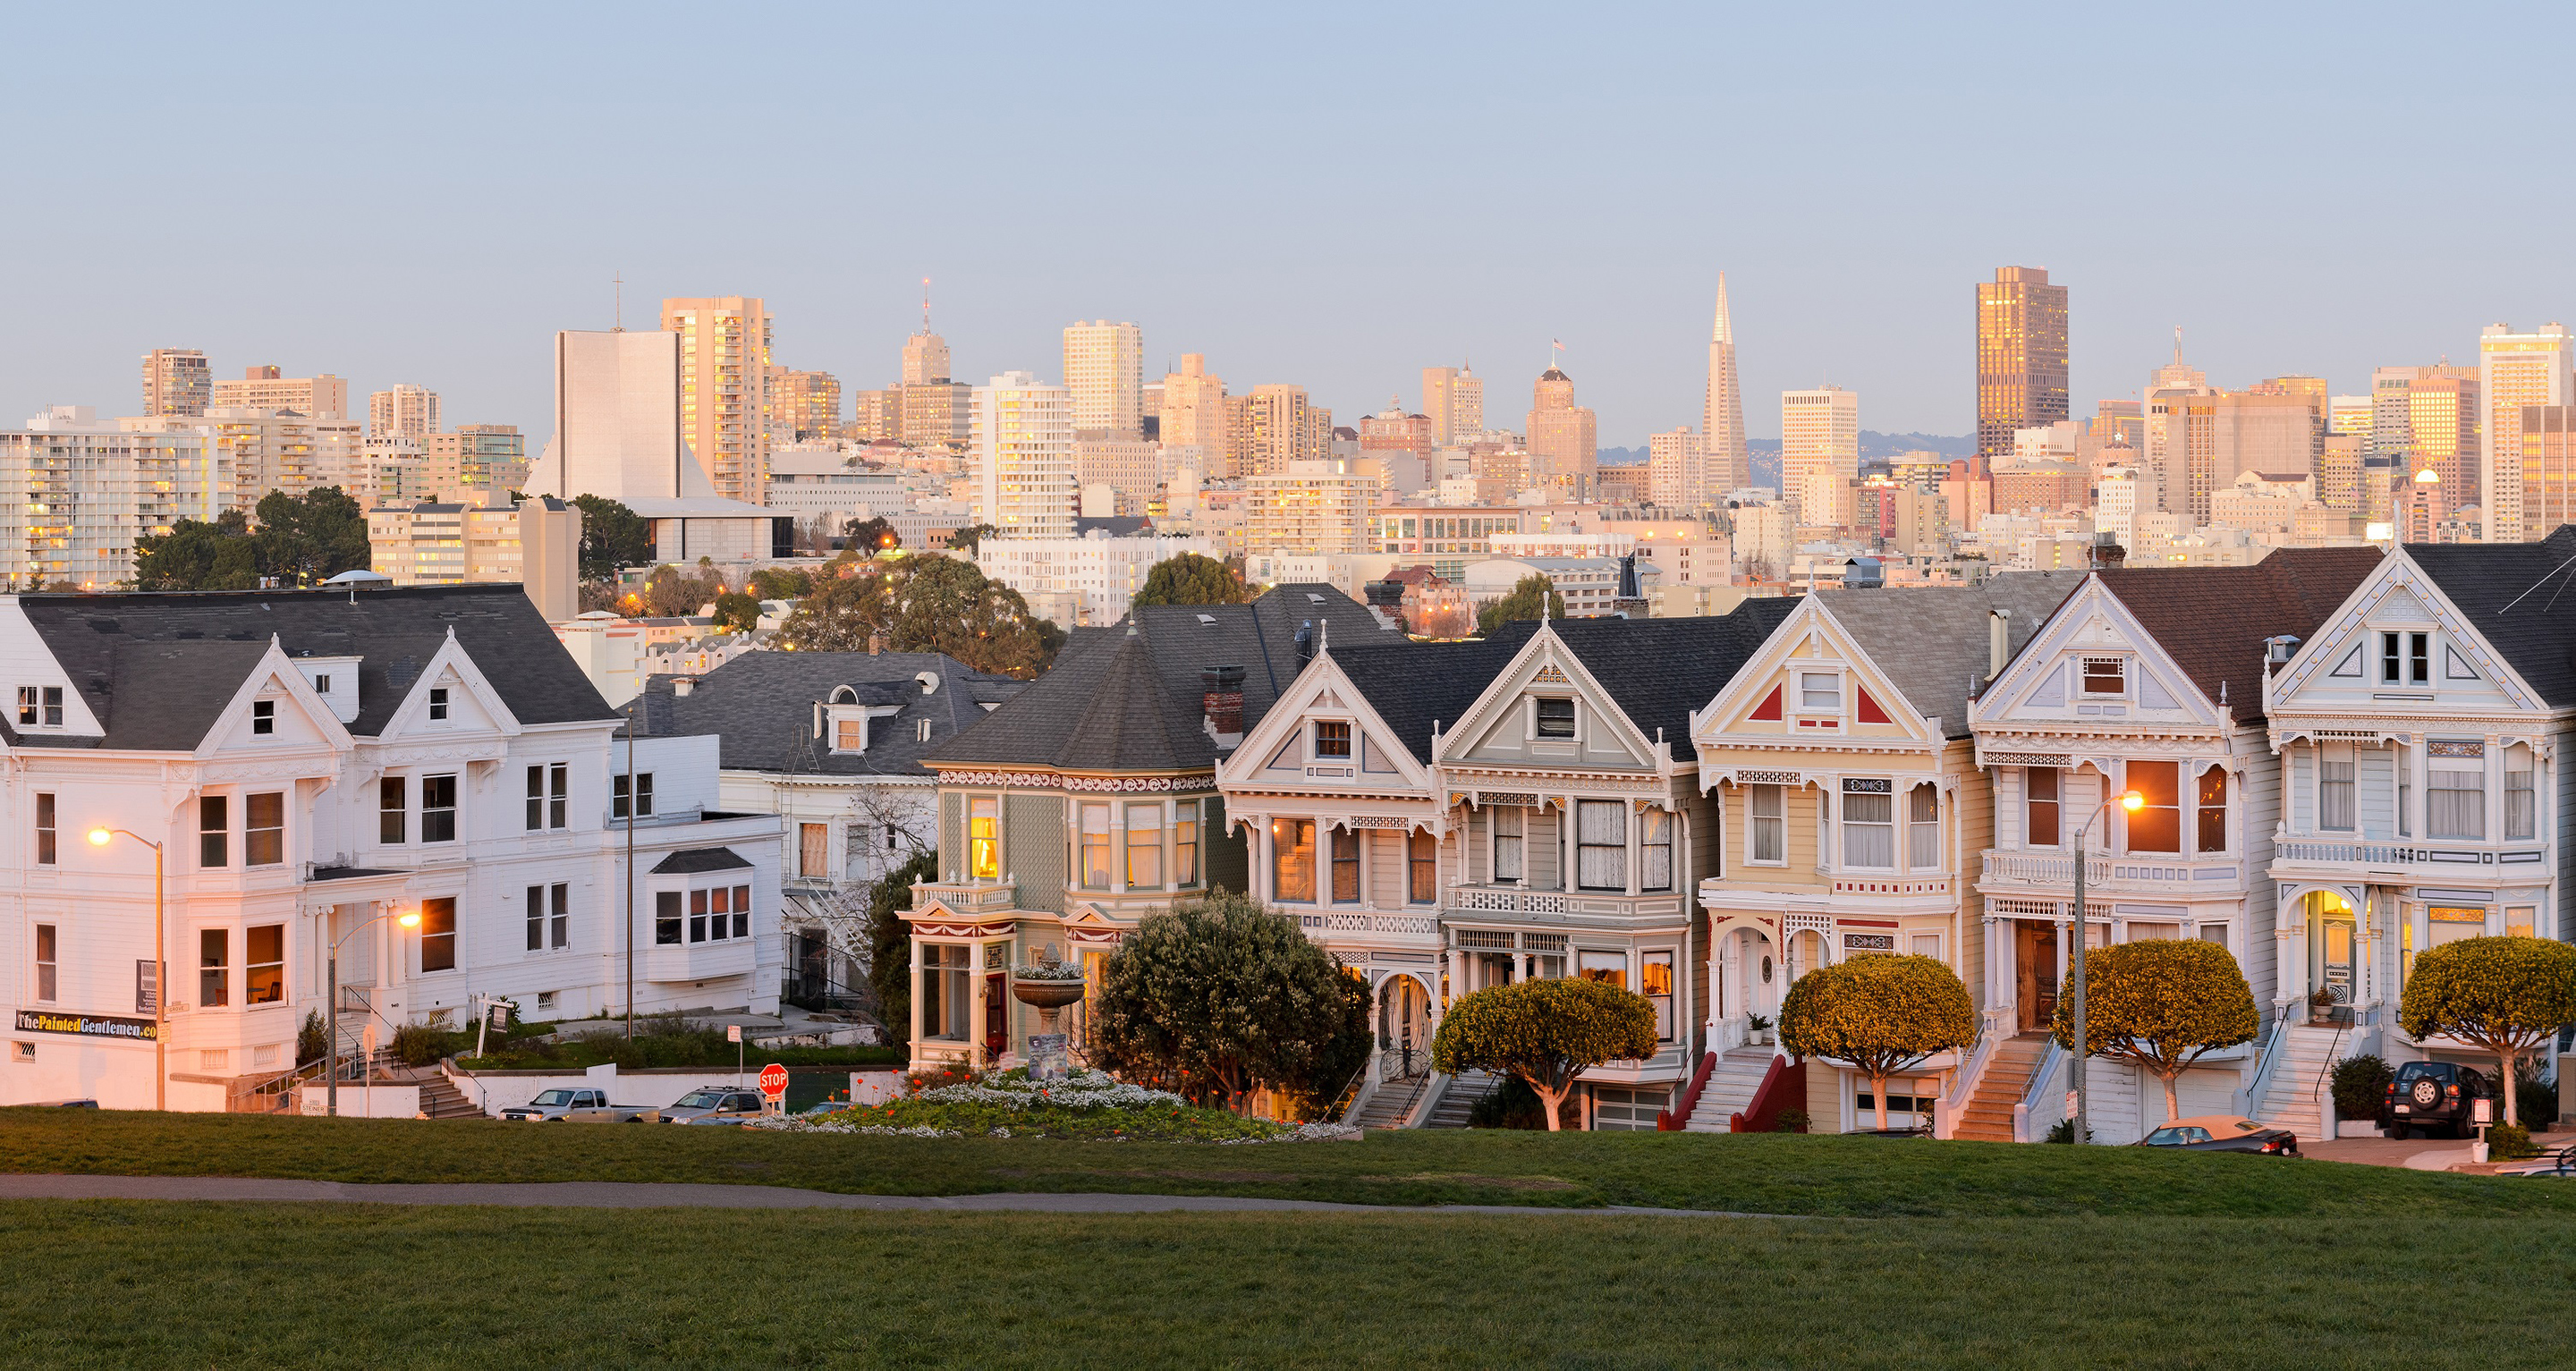 Vomiting anarchists, burrowing owls, and the San Francisco housing crisis